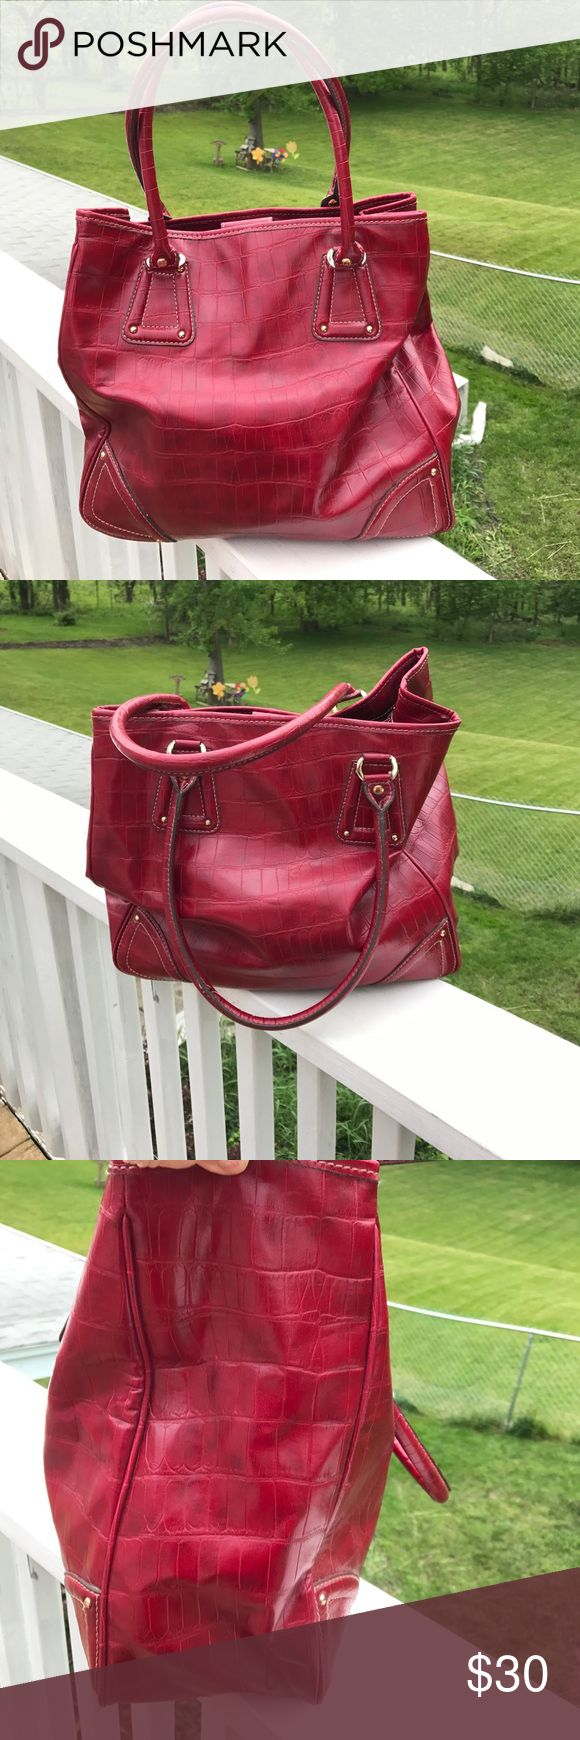 "Liz Claiborne Oversized Red Shoulder Bag NWOT Liz Claiborne Oversized Red Shoulder Bag NWOT. If bigger is better. . Measurements appropriately 13 1/4"" H x 14"" W x 5 3/8"" D 9"" strap drop 🚫trades. Please ask all questions prior to buying Liz Claiborne Bags Shoulder Bags"